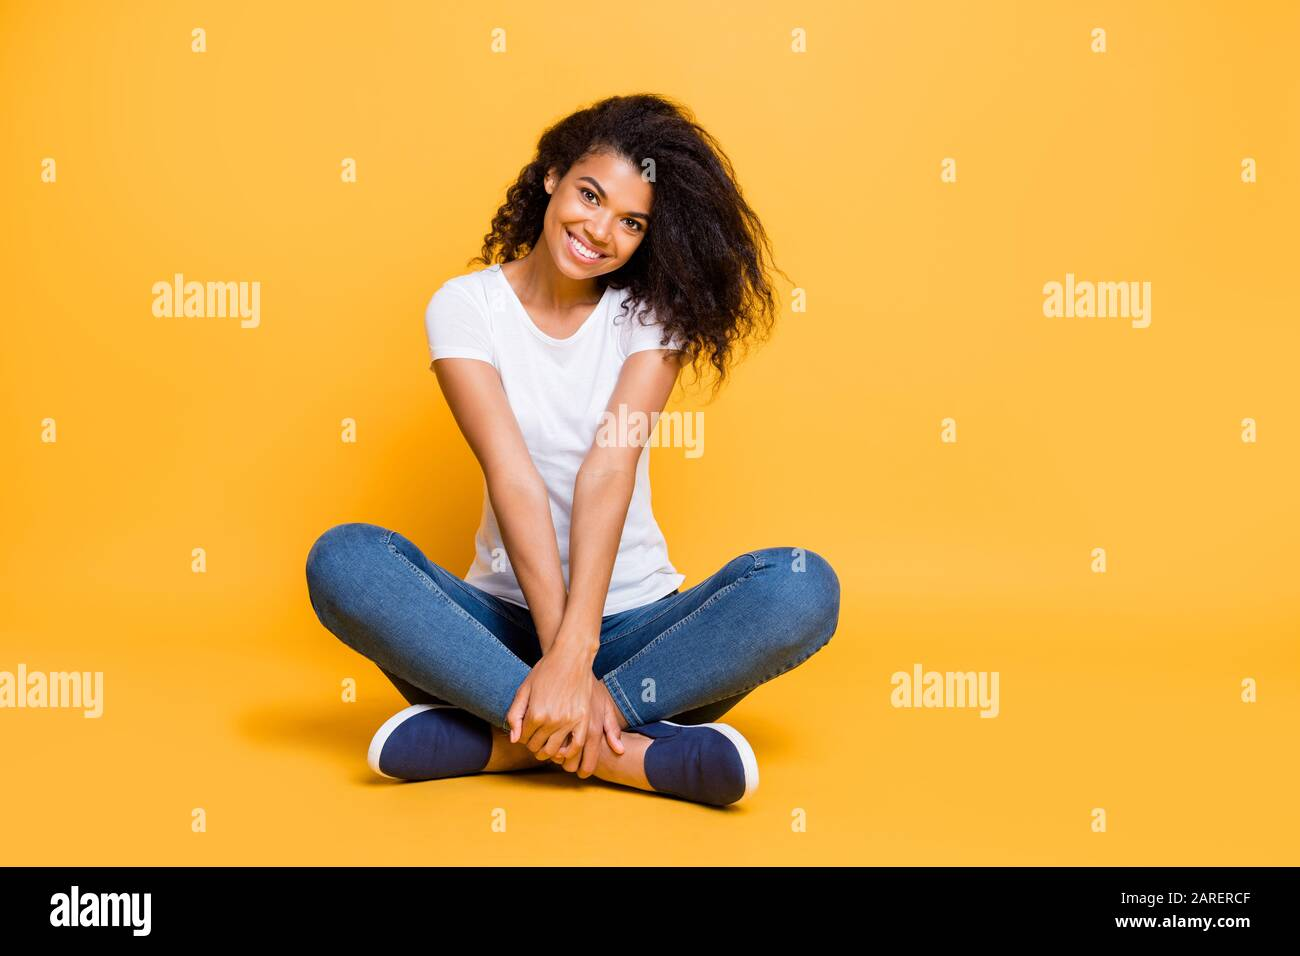 Full length body size photo of cheerful positive cute nice charming pretty girl in jeans denim footwear sitting with legs crossed isolated over vivid Stock Photo